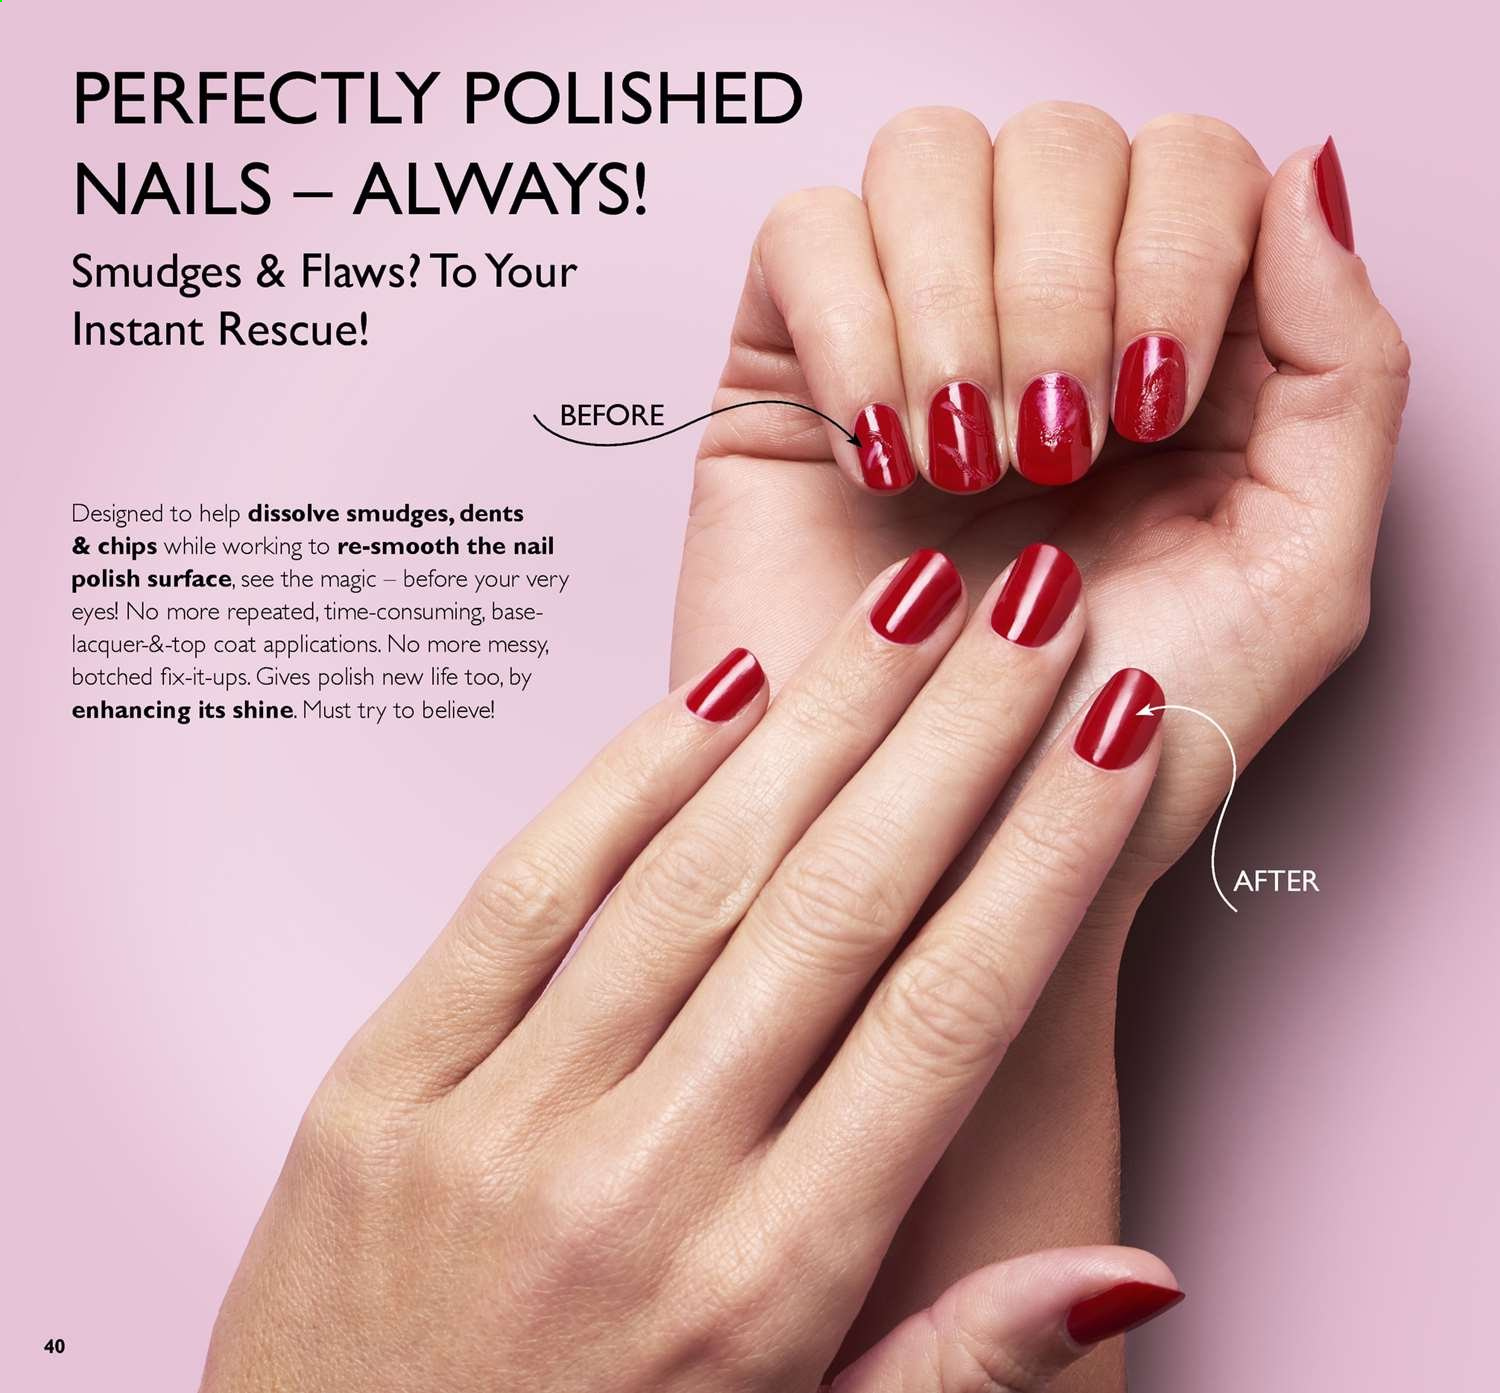 Oriflame offer  - 14.6.2019 - 4.7.2019 - Sales products - coat, surface, polish, chips. Page 40.